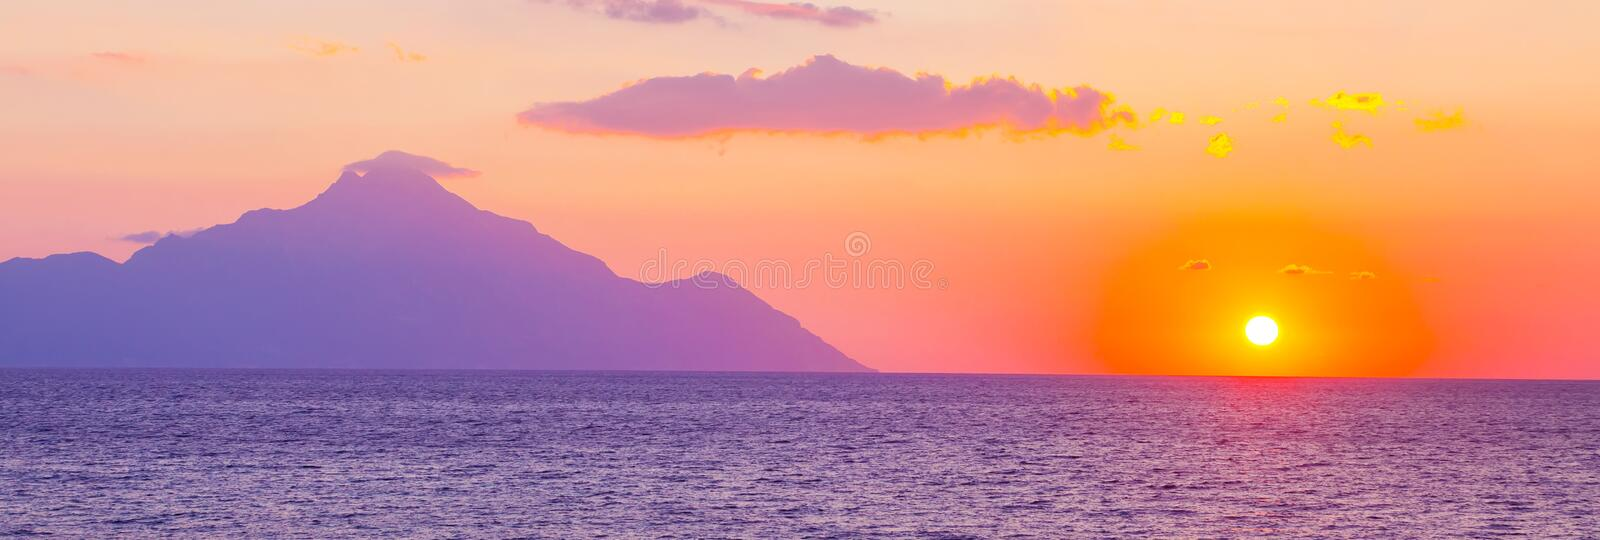 Silhouette of mount Athos at sunrise or sunset with light rays and sea panorama stock photo